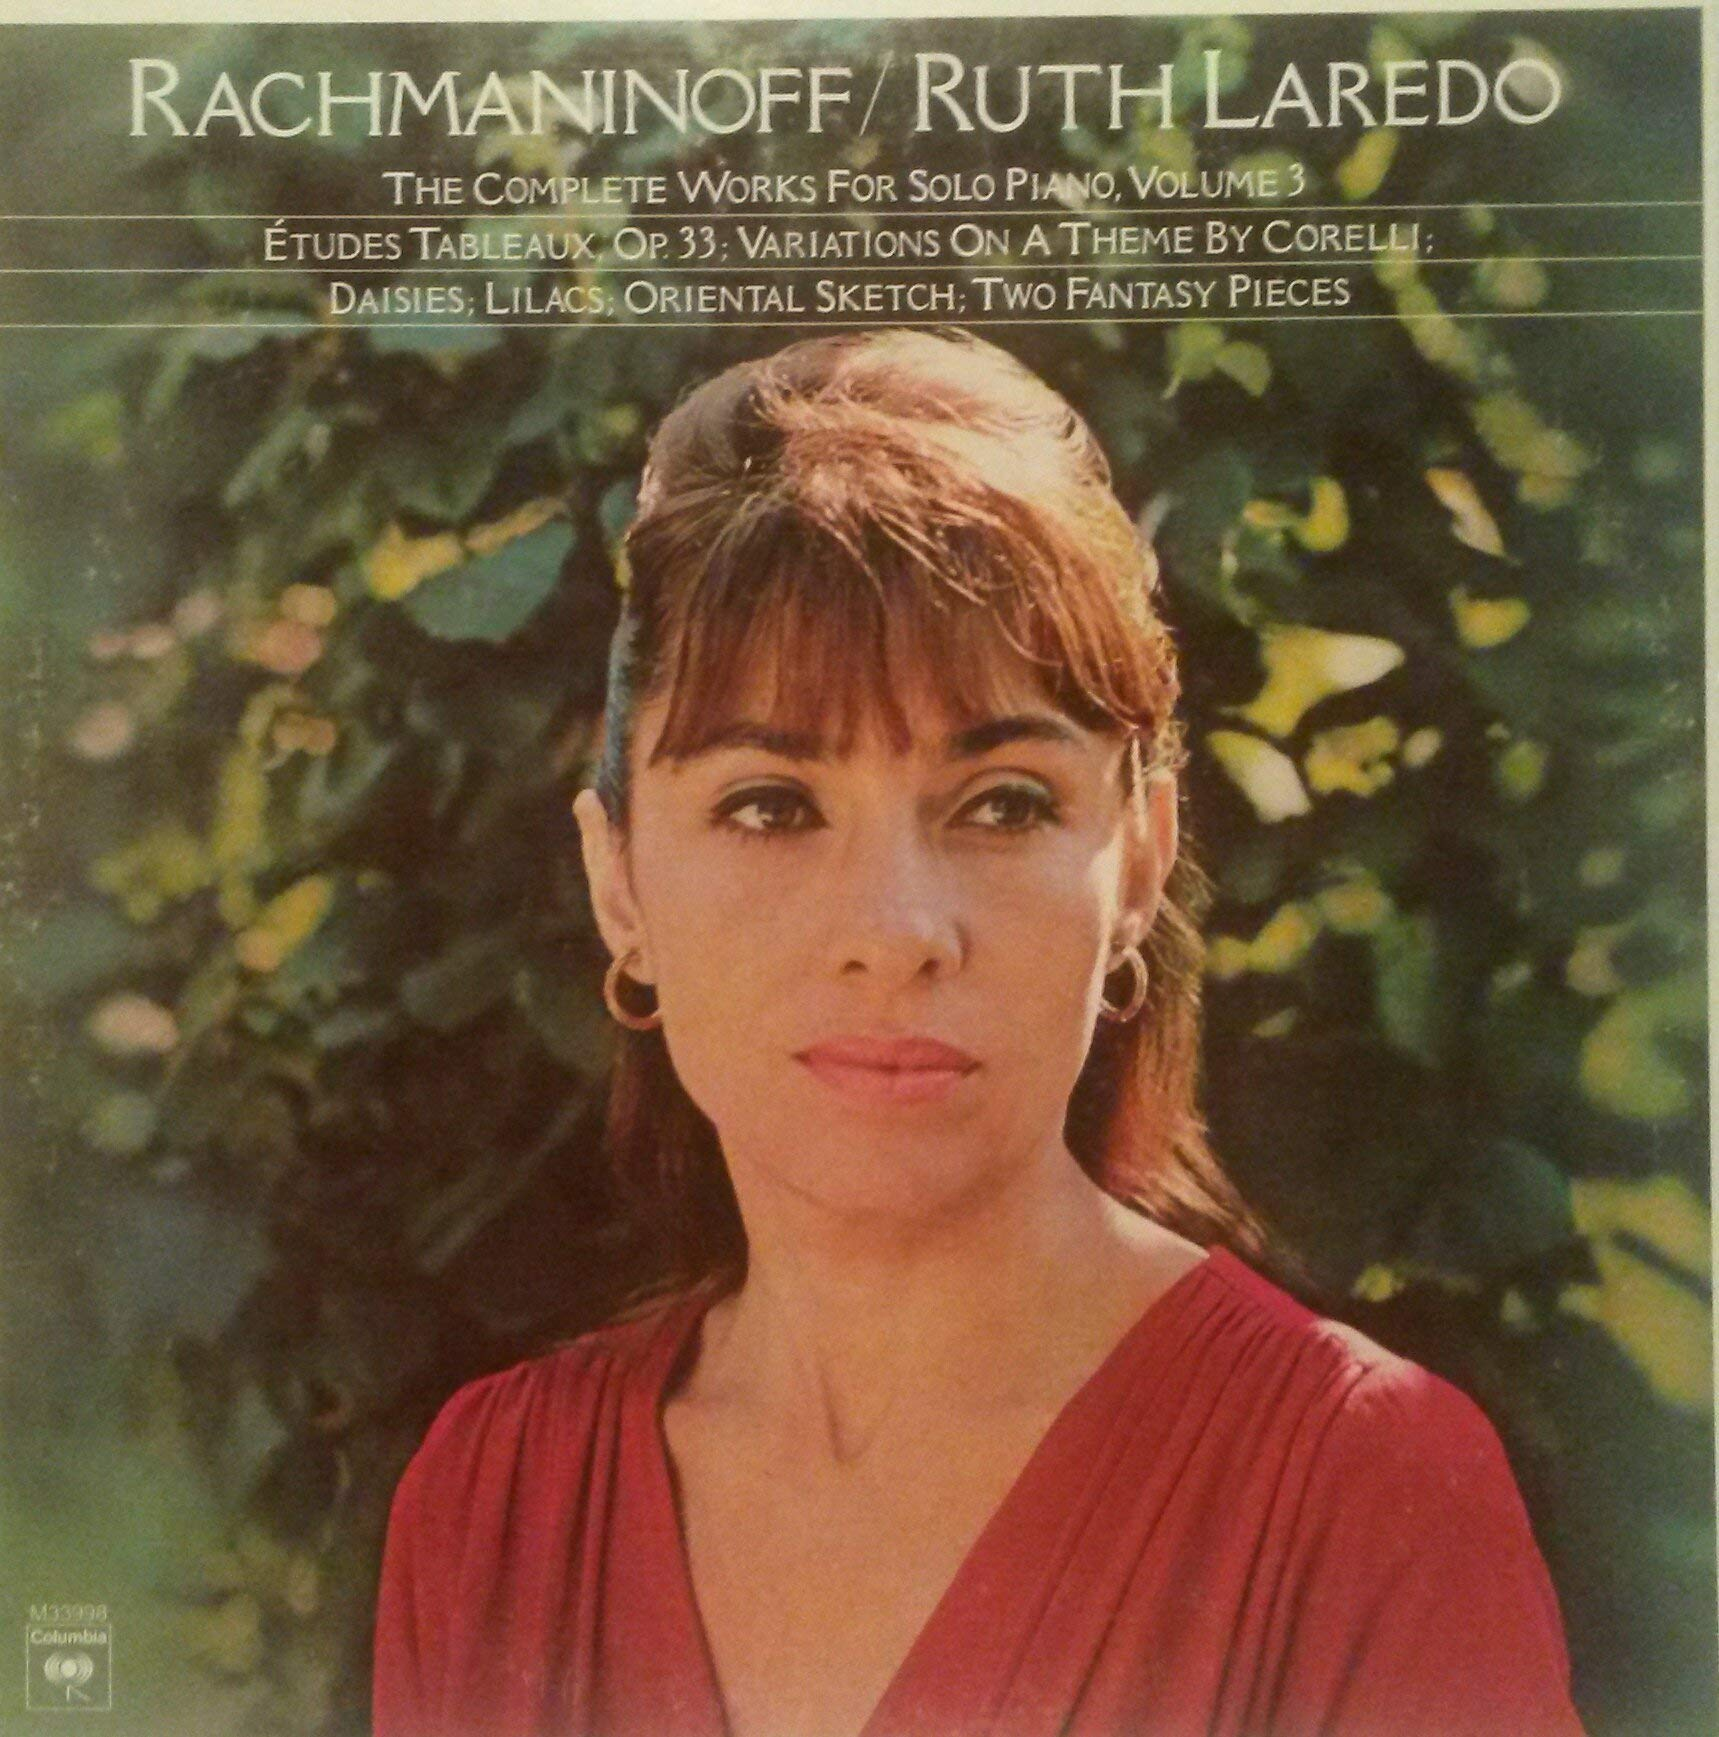 Rachmaninoff: THE Complete Works for Solo Piano, Volume 3: Etudes Tableaux, Op. 33 ~ Variations on a Theme By Corelli ~ Lilacs ~ Daisies ~ Oriental Sketch ~ etc. ~Columbia M 33998